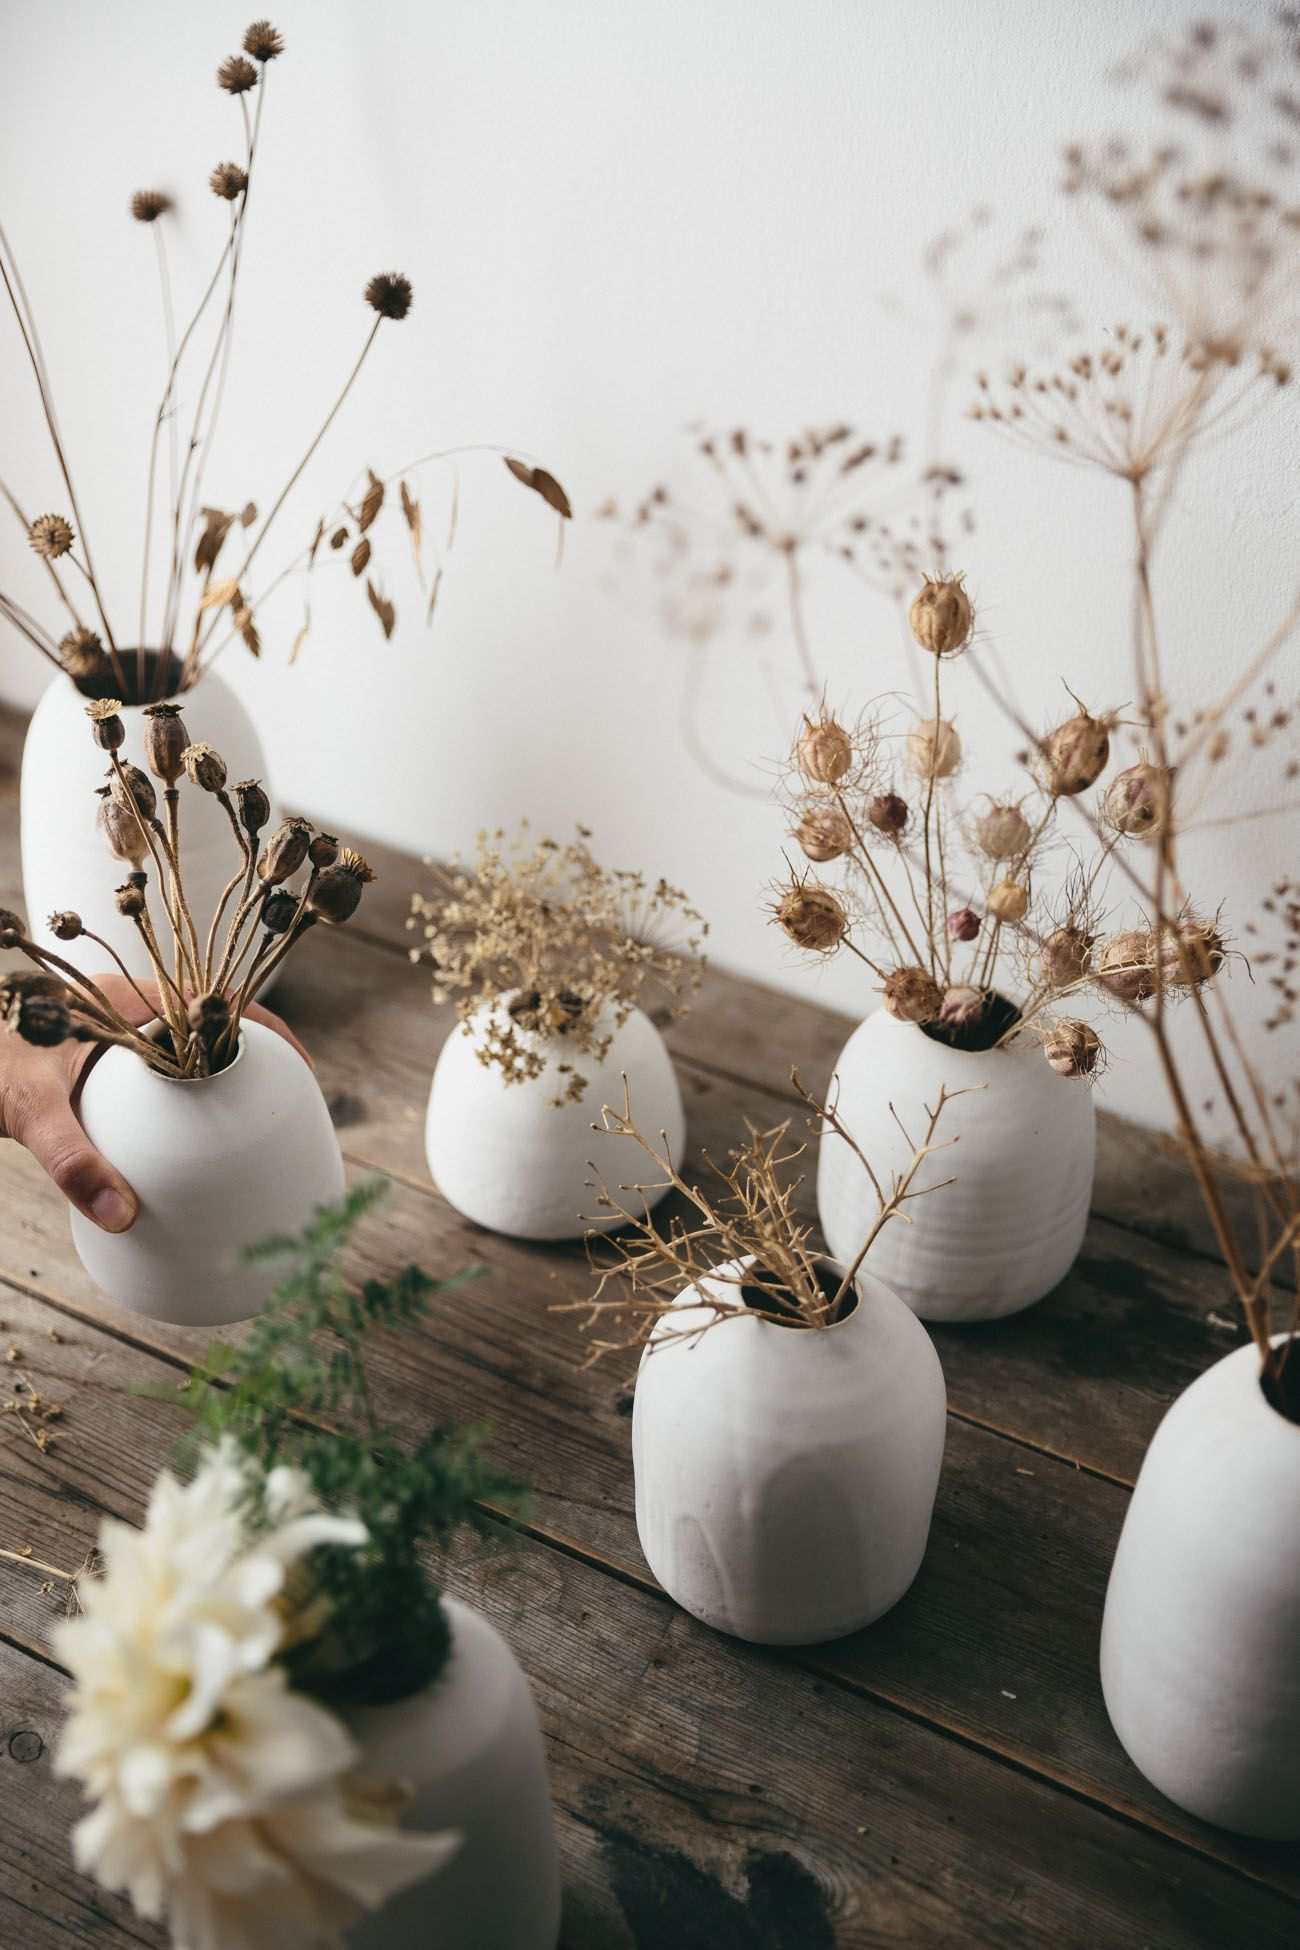 perfect for displays of dry and fresh flowers, named after our favourite spring flowers and the joy they bring during the